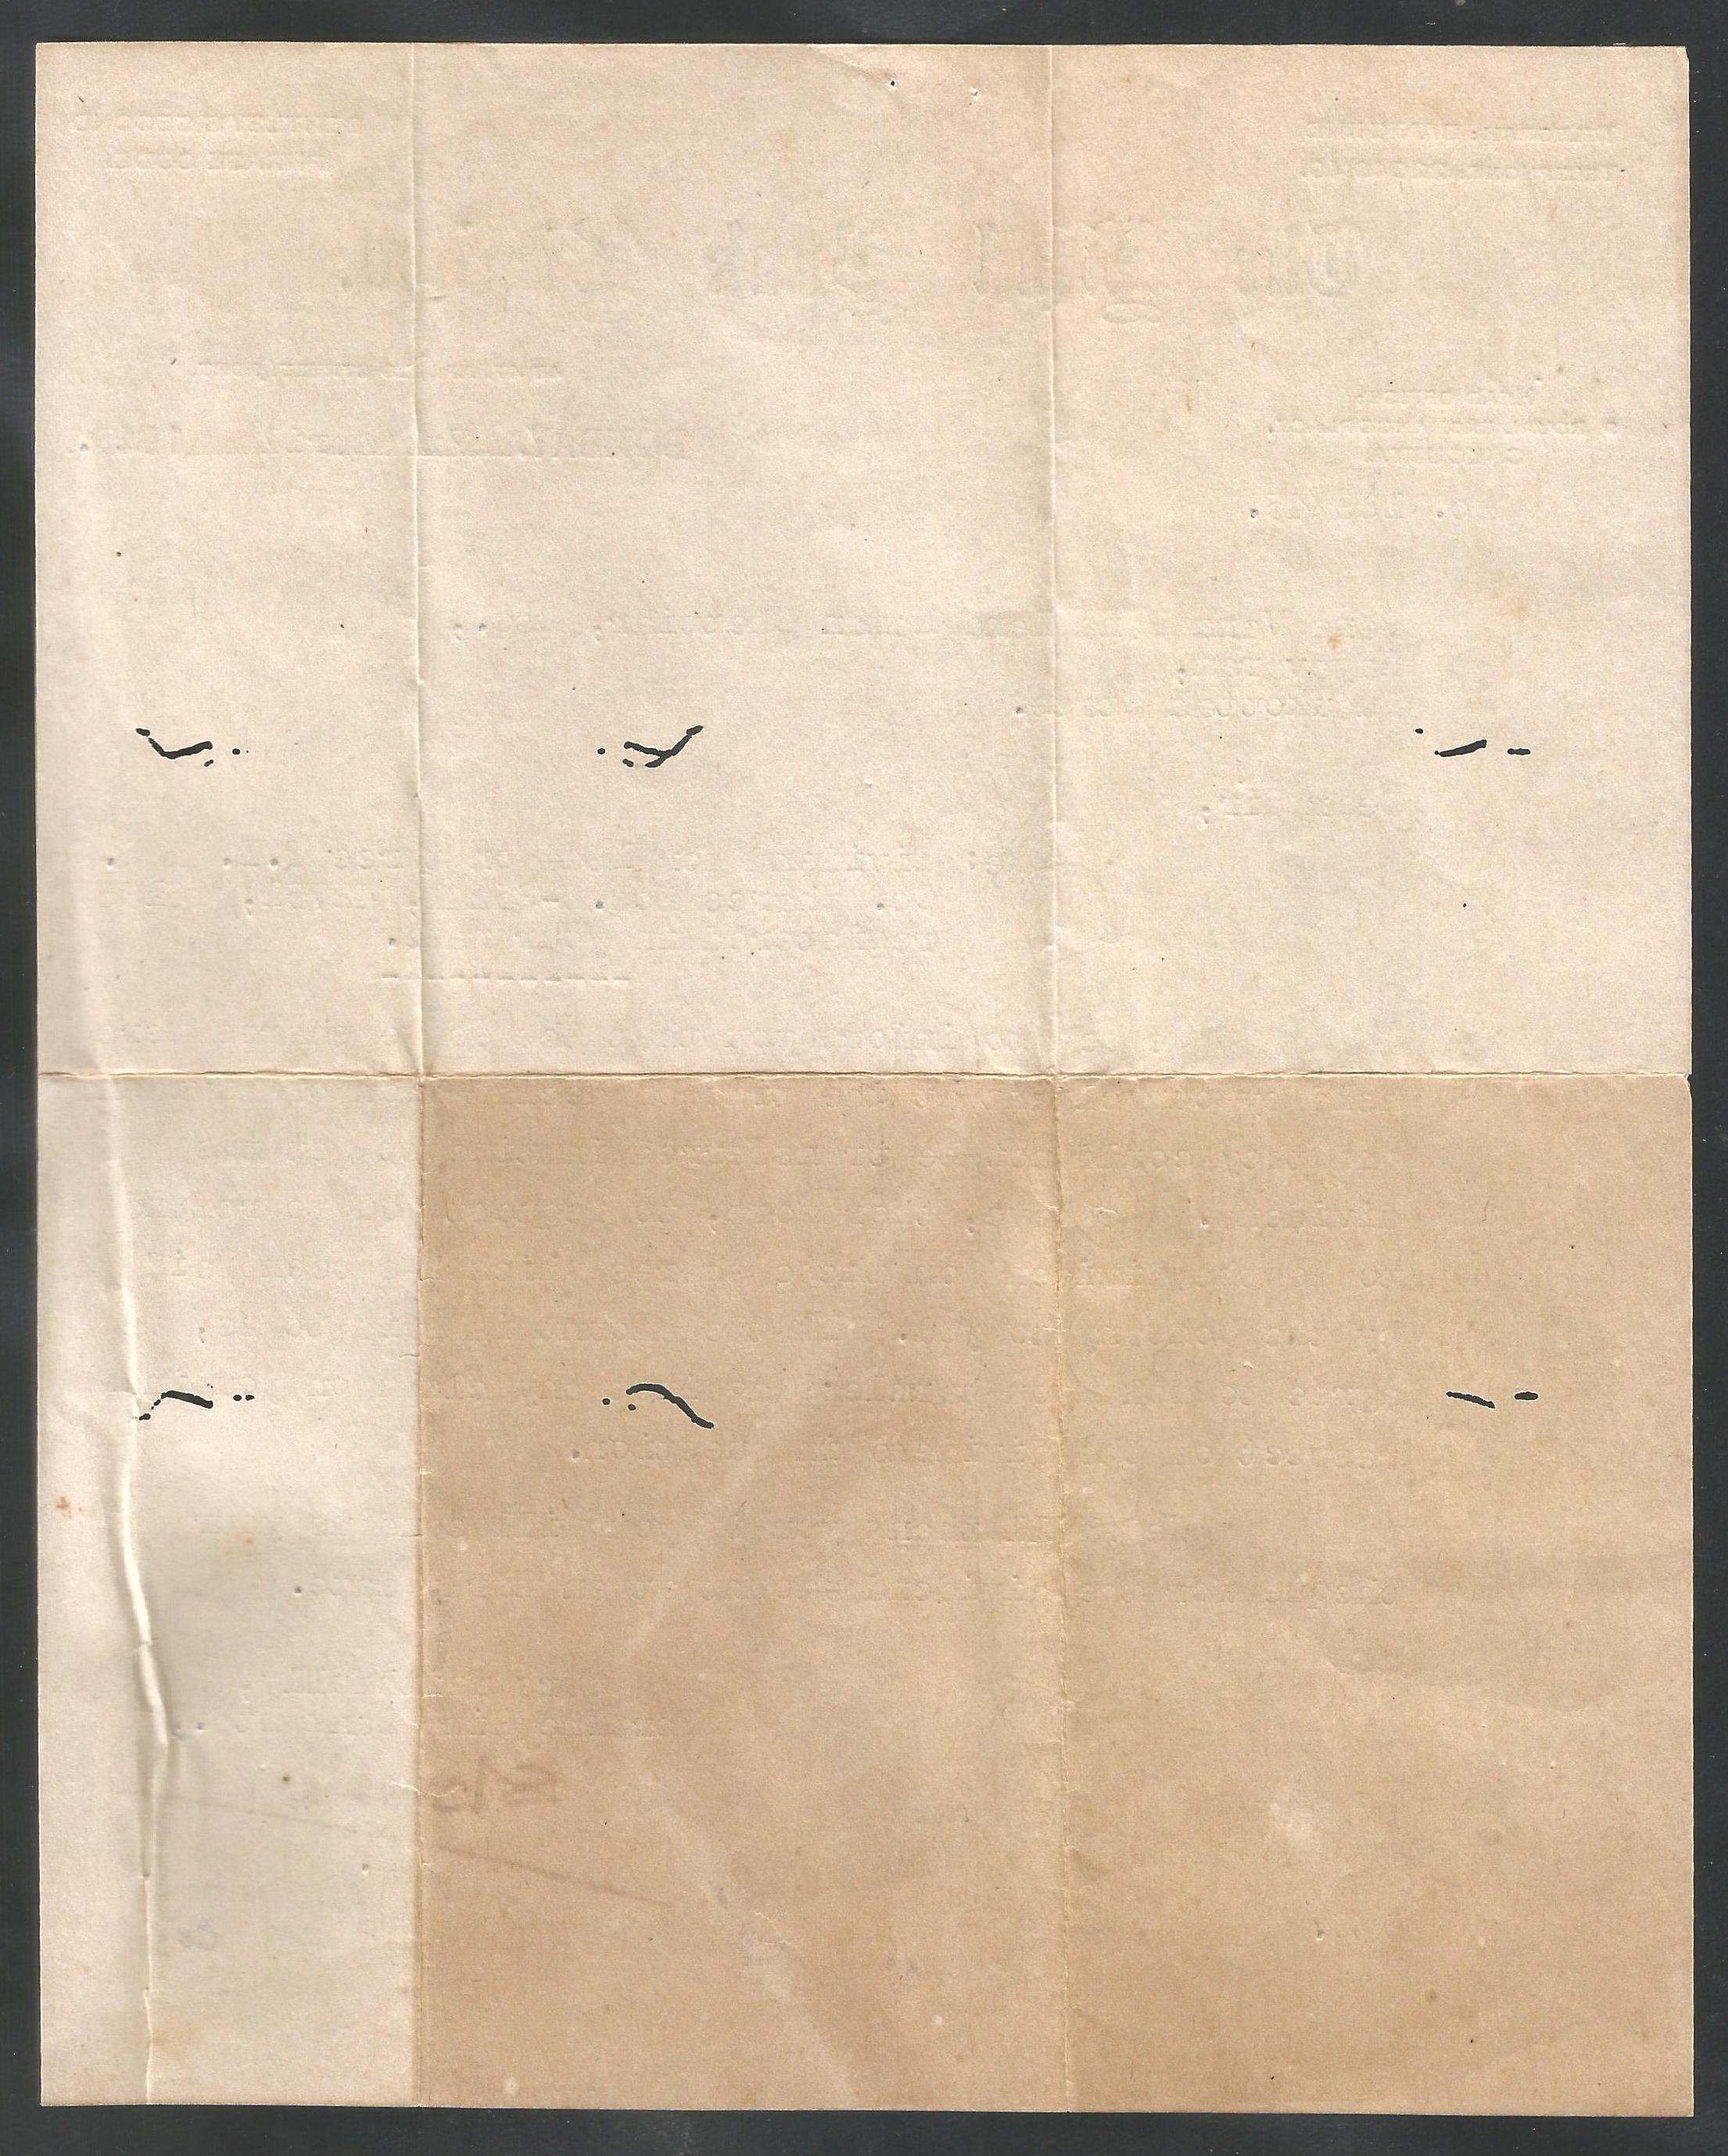 India 1945 Hind Bank Letter Head Bombay (Some holes) @030